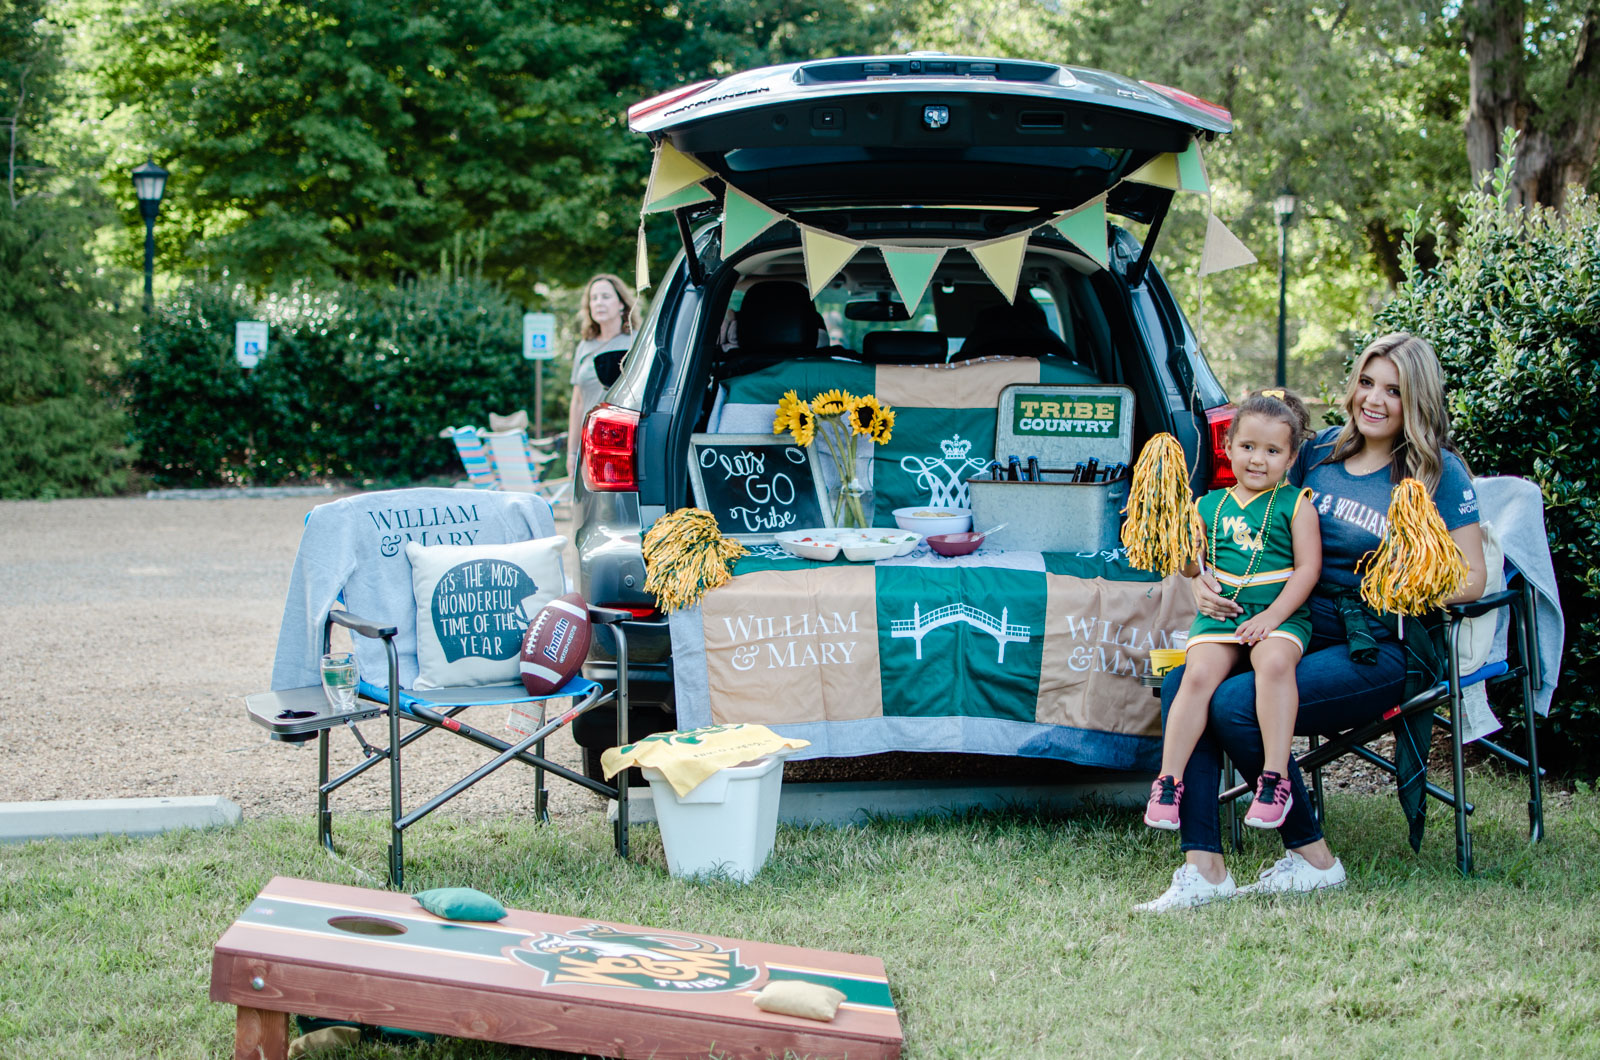 college of william and mary new logo gear - chic football tailgate | bylaurenm.com